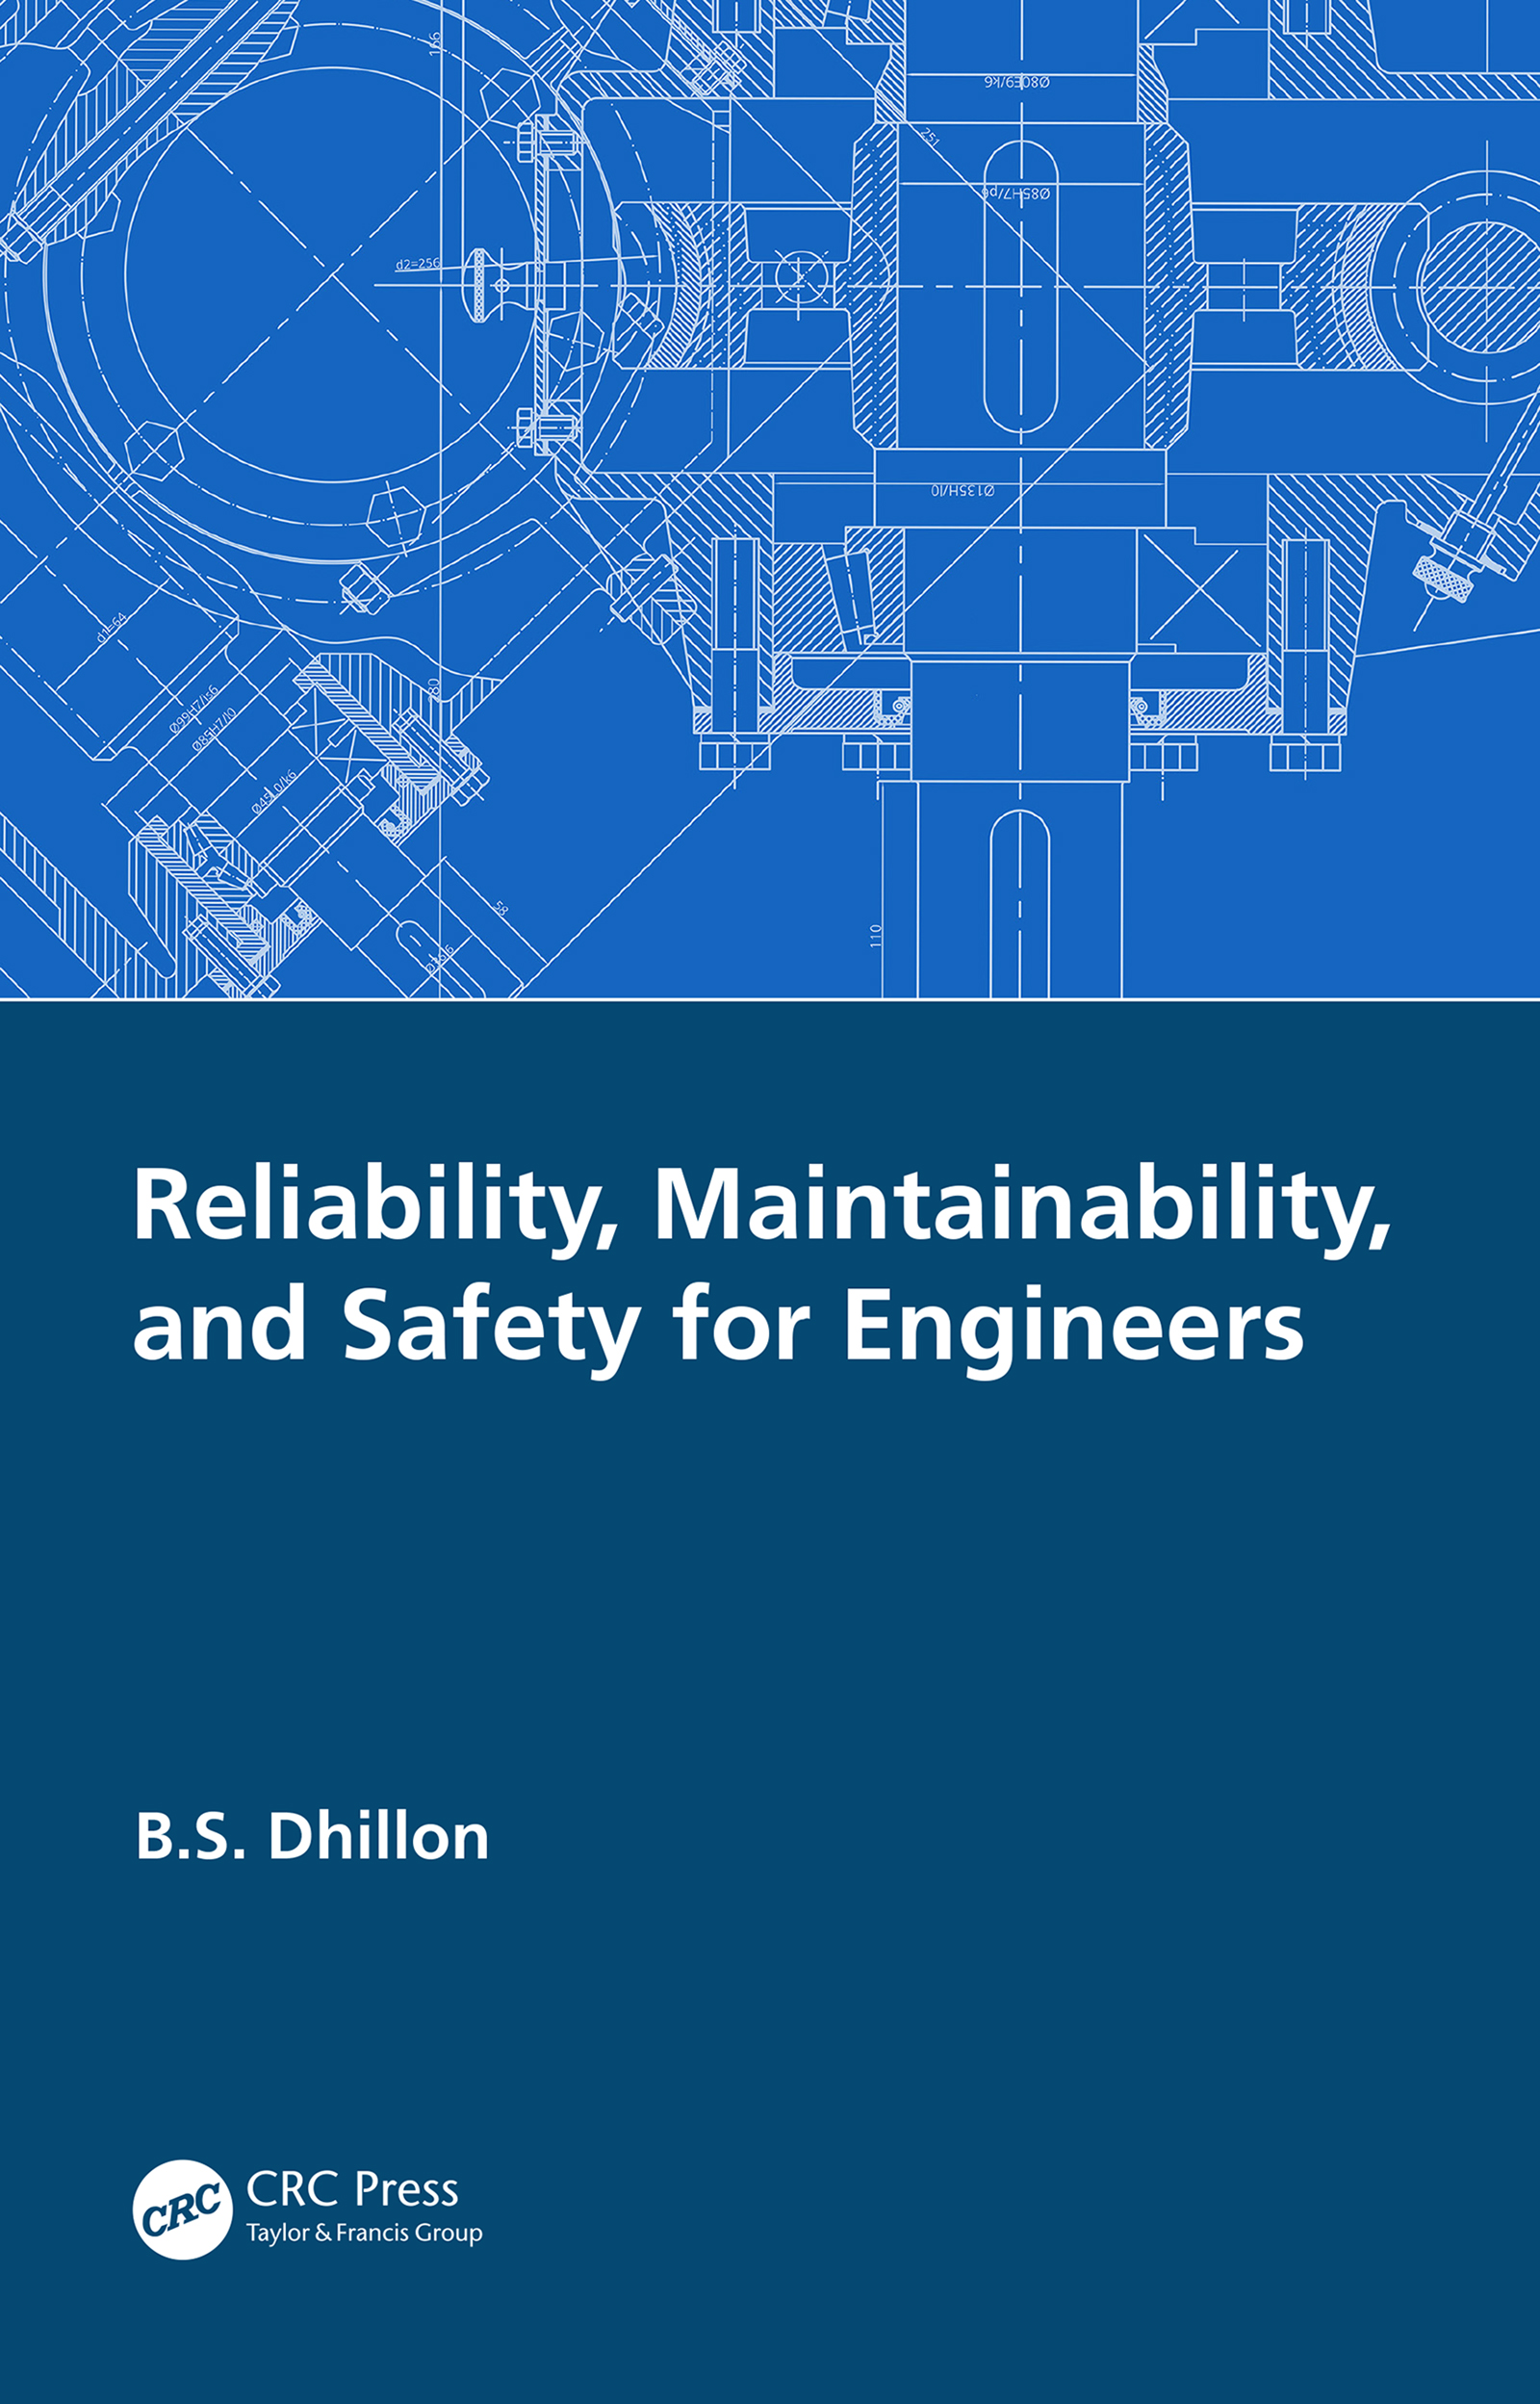 Reliability, maintainability, and safety mathematics